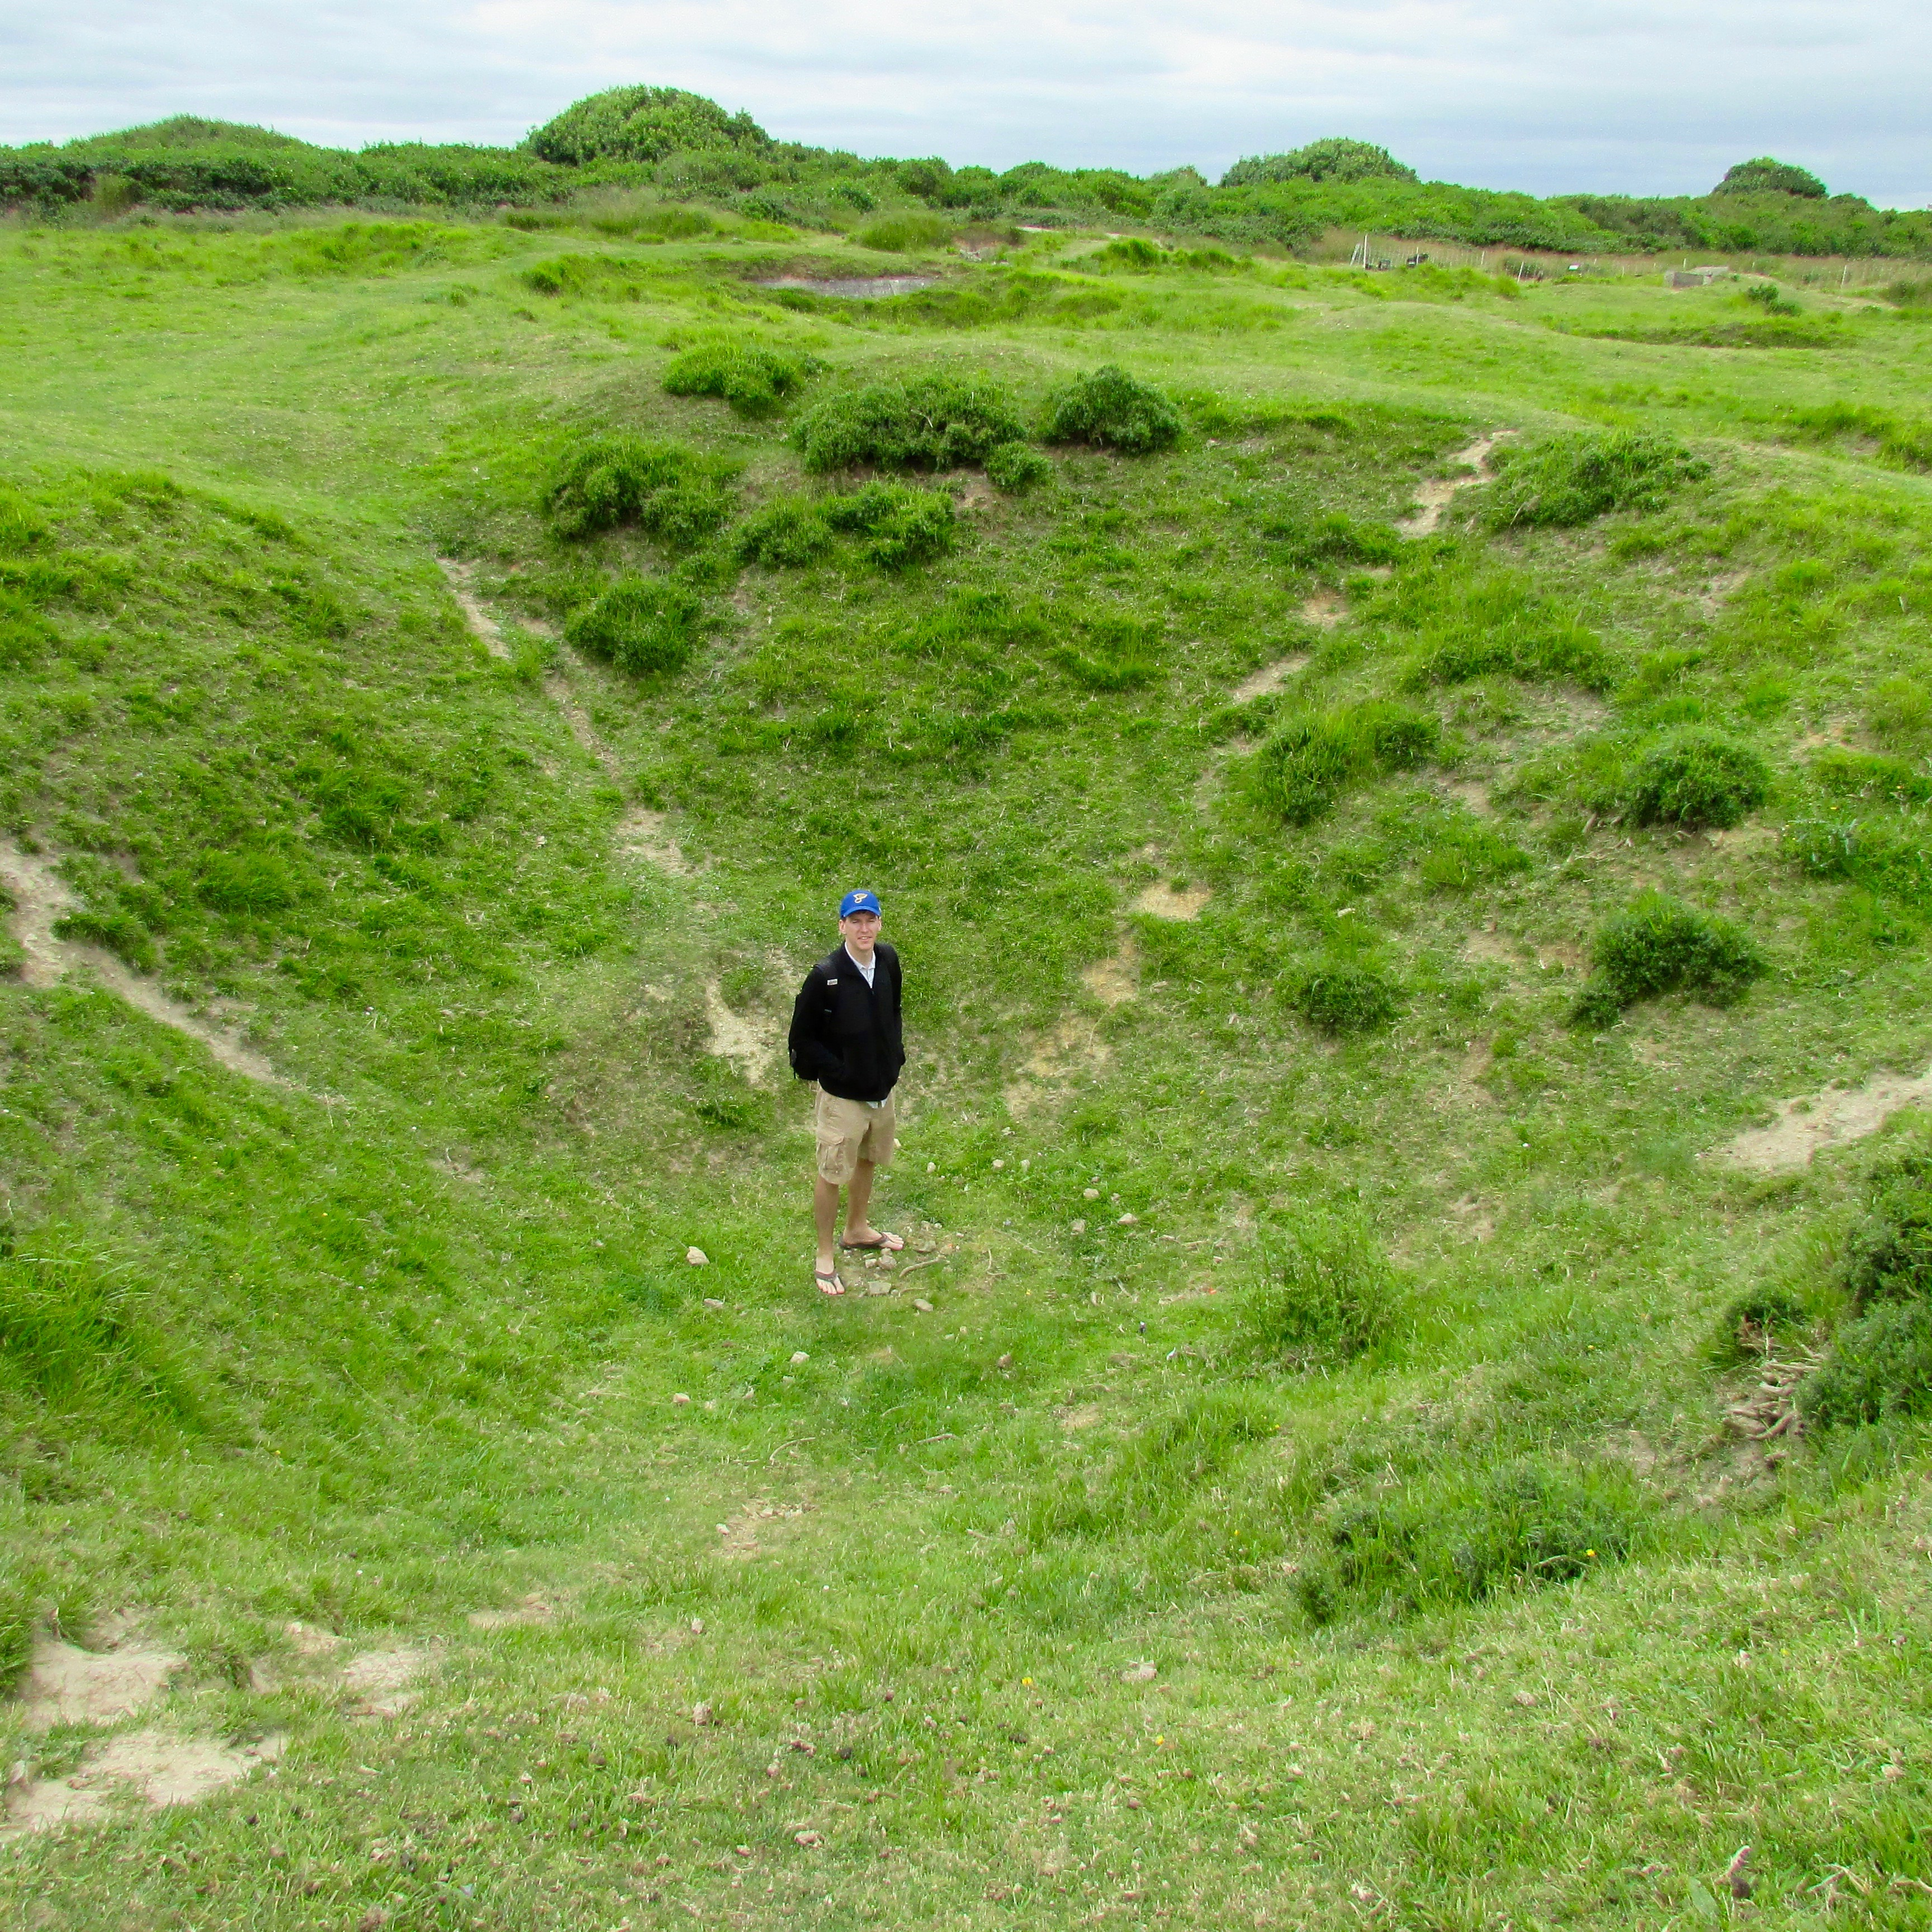 Adam looking small in a bomb crater